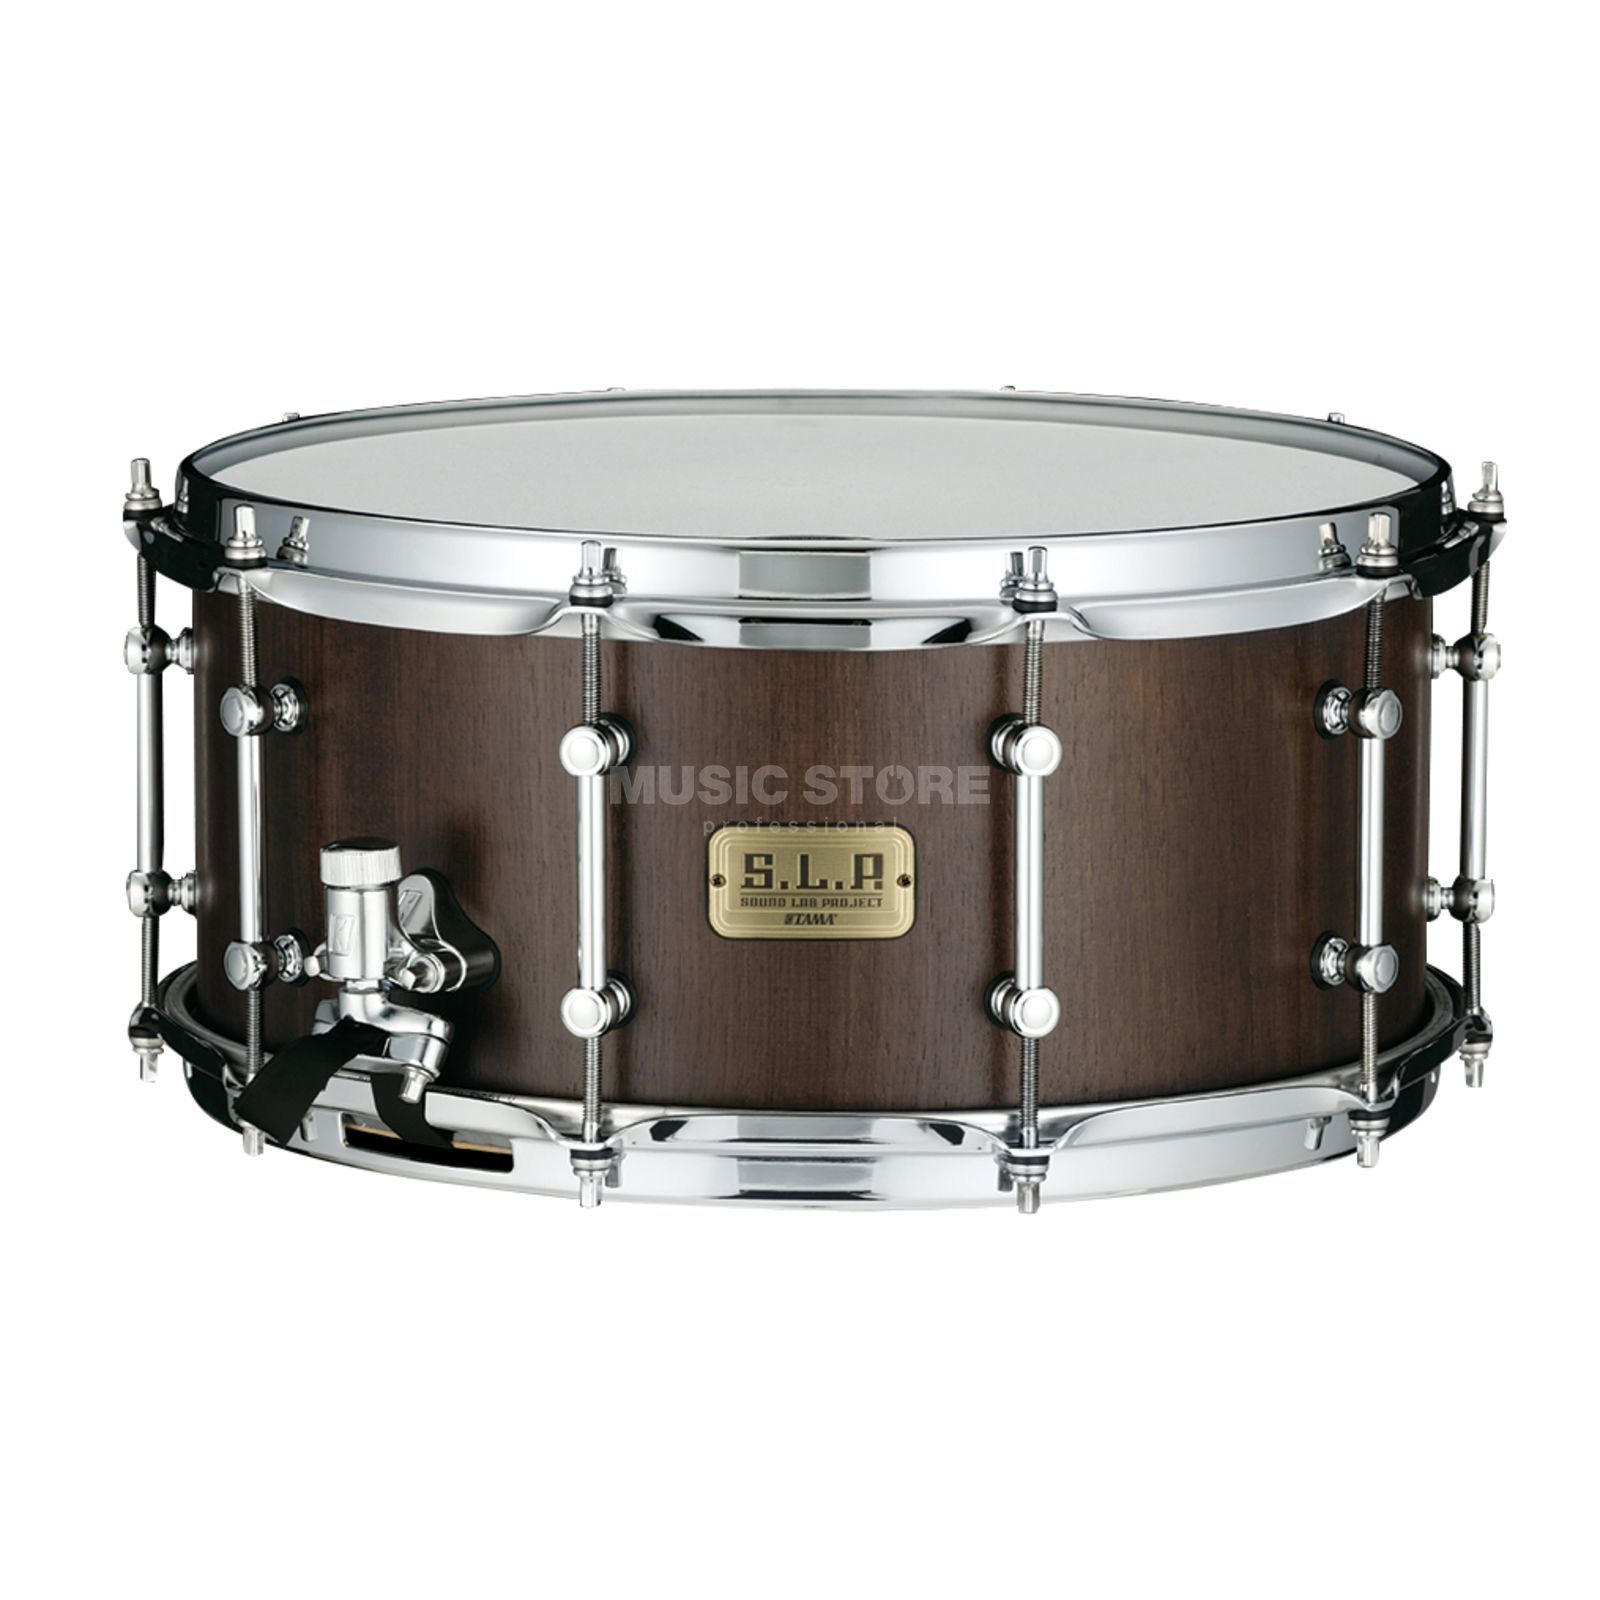 Tama LGW1465-MBW Snare Drum Matte Black Walnut Εικόνα προιόντος